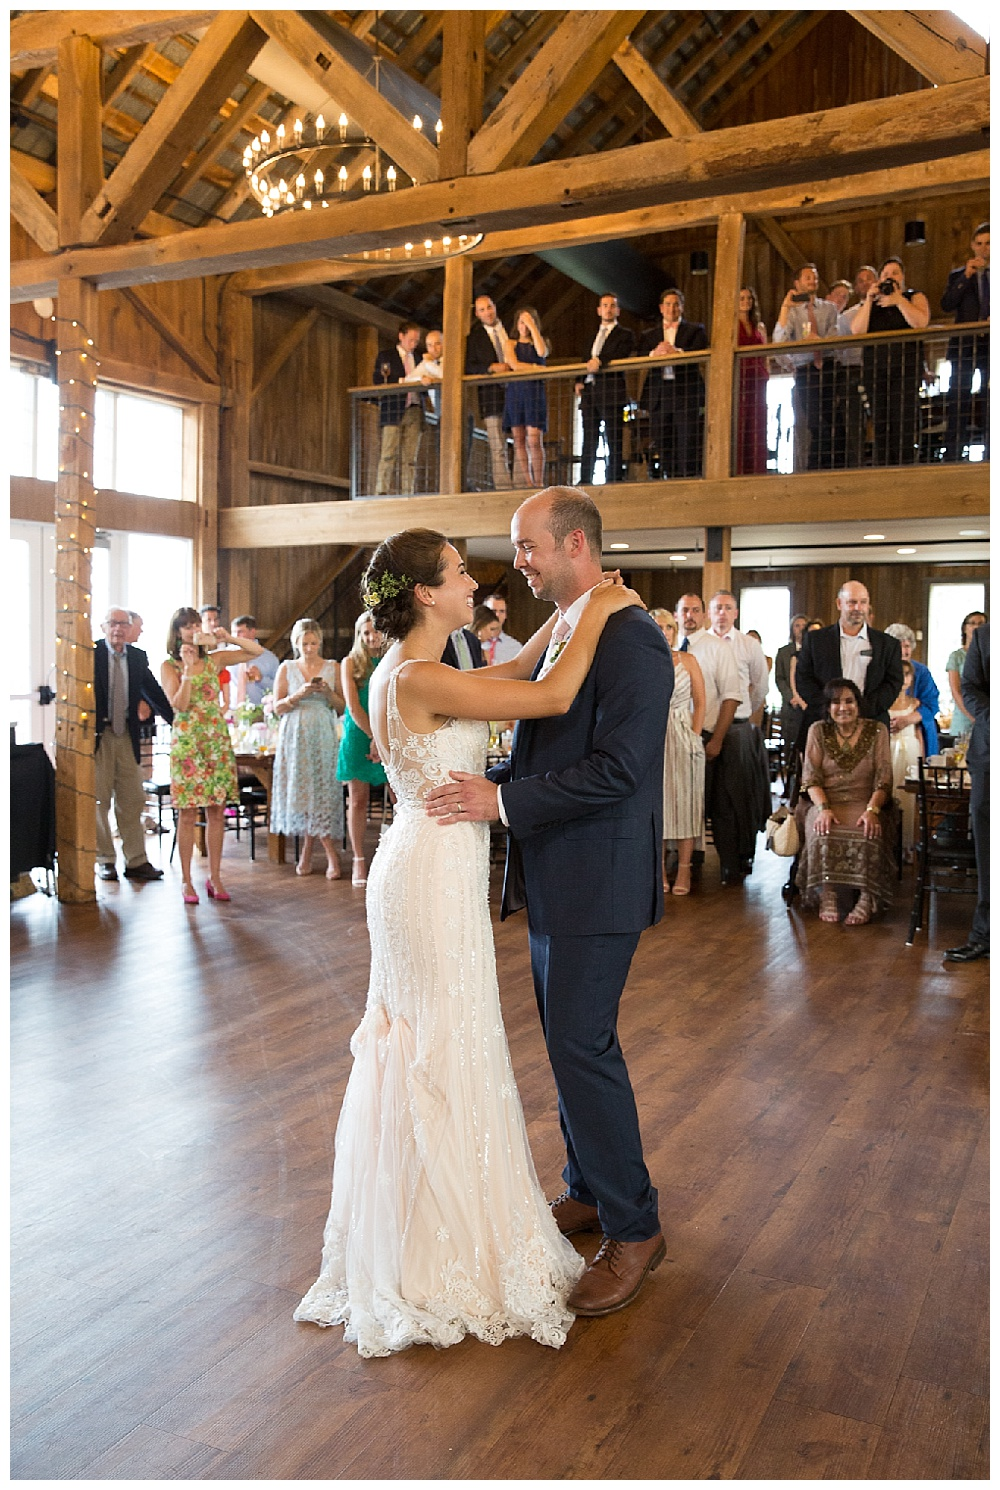 Central New York Weddings | Red Barn 20 at Windridge Estate | Cazenovia, NY | Syracuse Weddings | www.redoakweddings.com